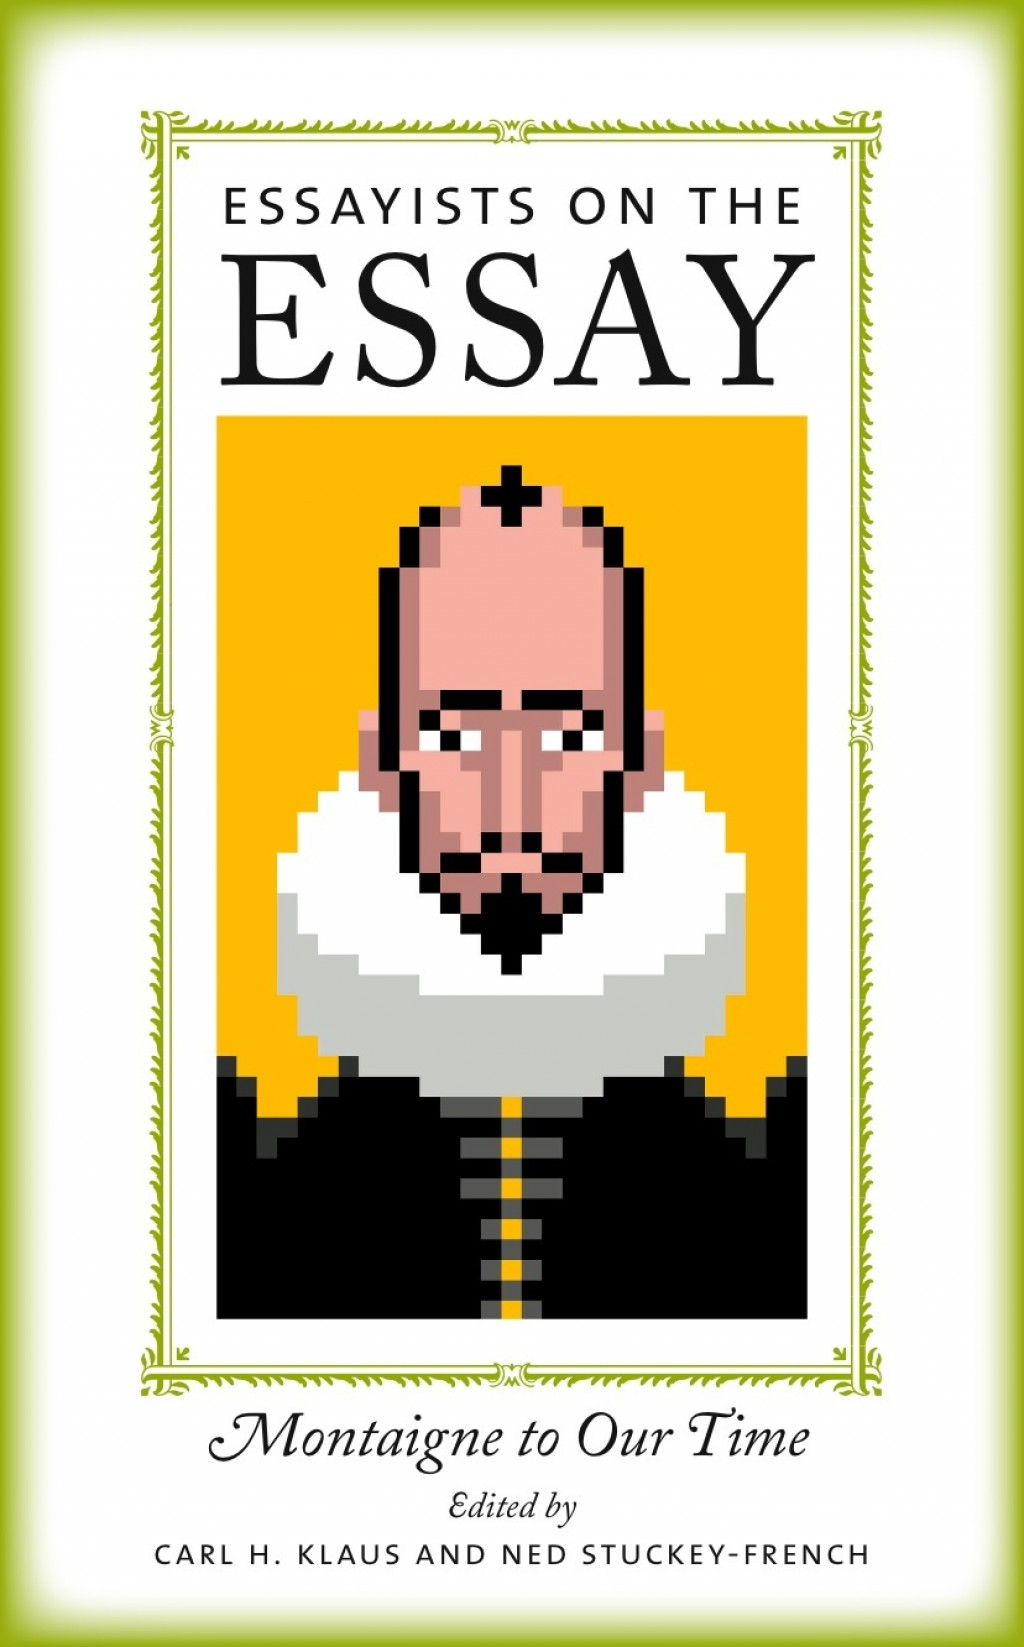 024 Essay Example It Gets Worse Collection Of Essays Essayists On The Impressive A Review Free Download Large